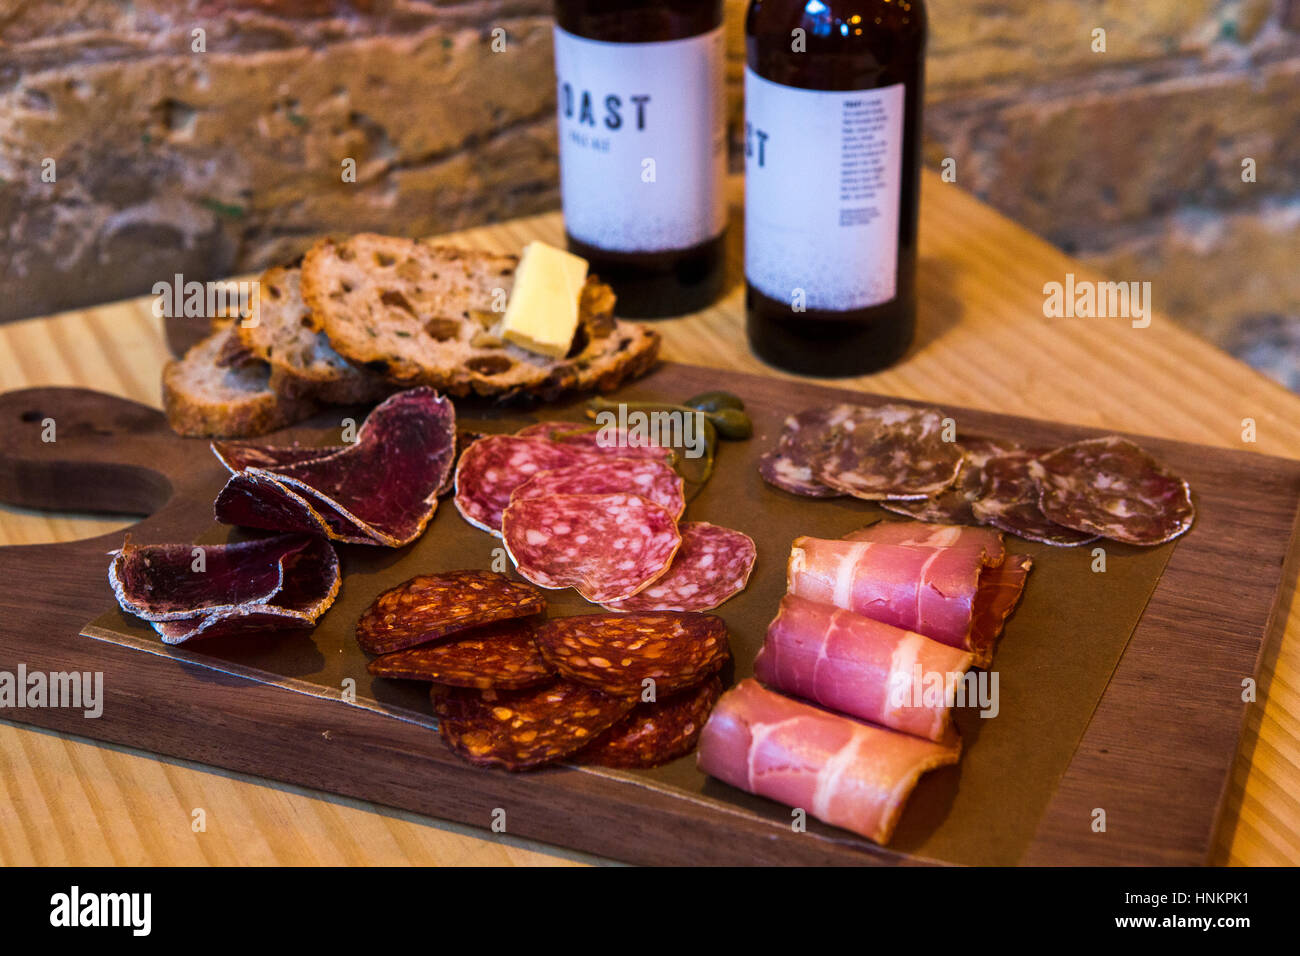 Charcuterie platter with craft beer. - Stock Image